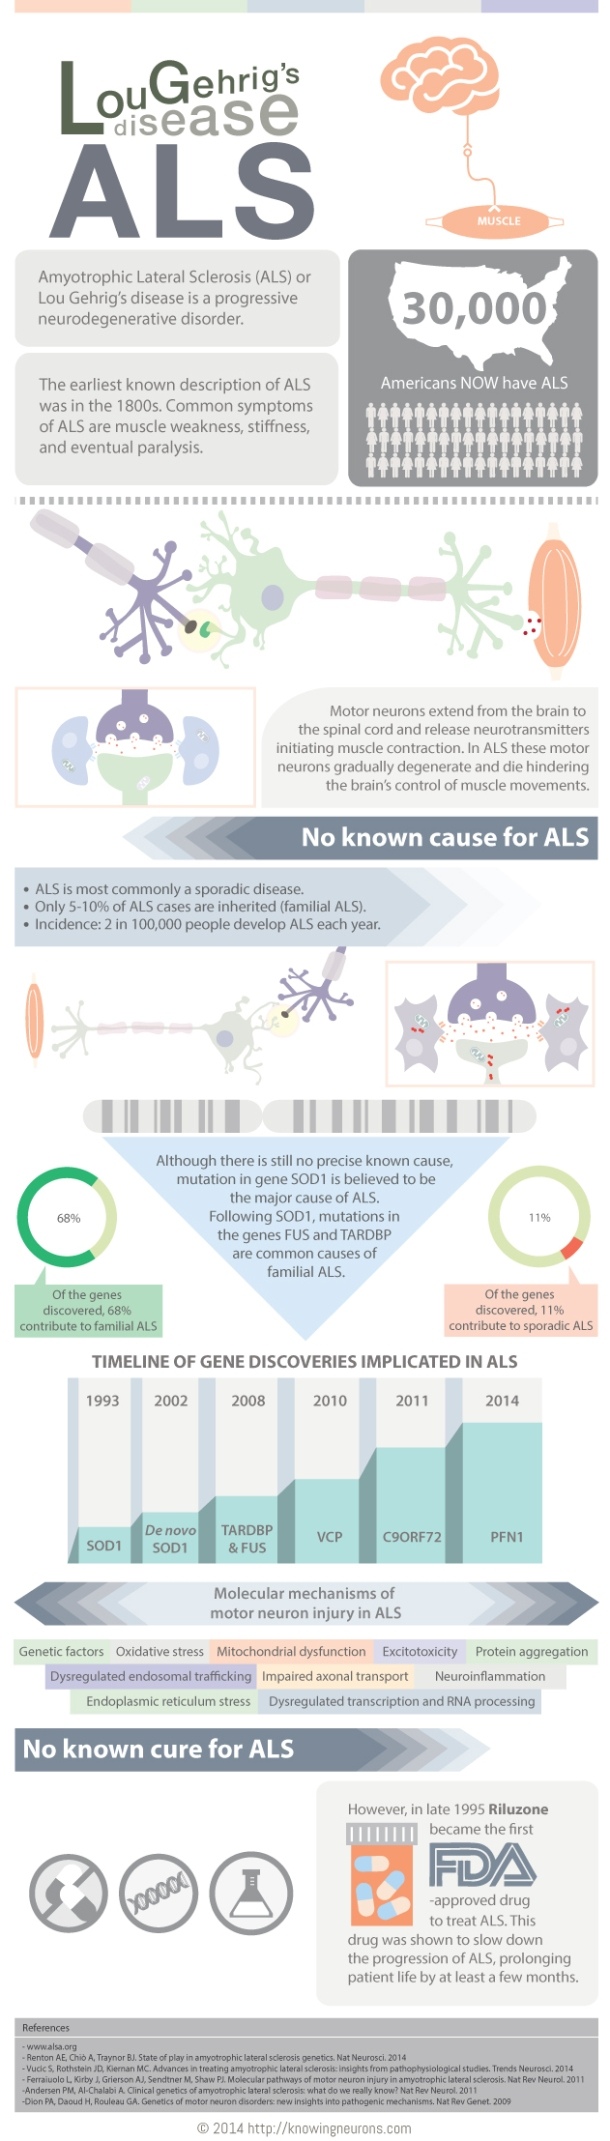 ALS Infographic by Knowing Neurons